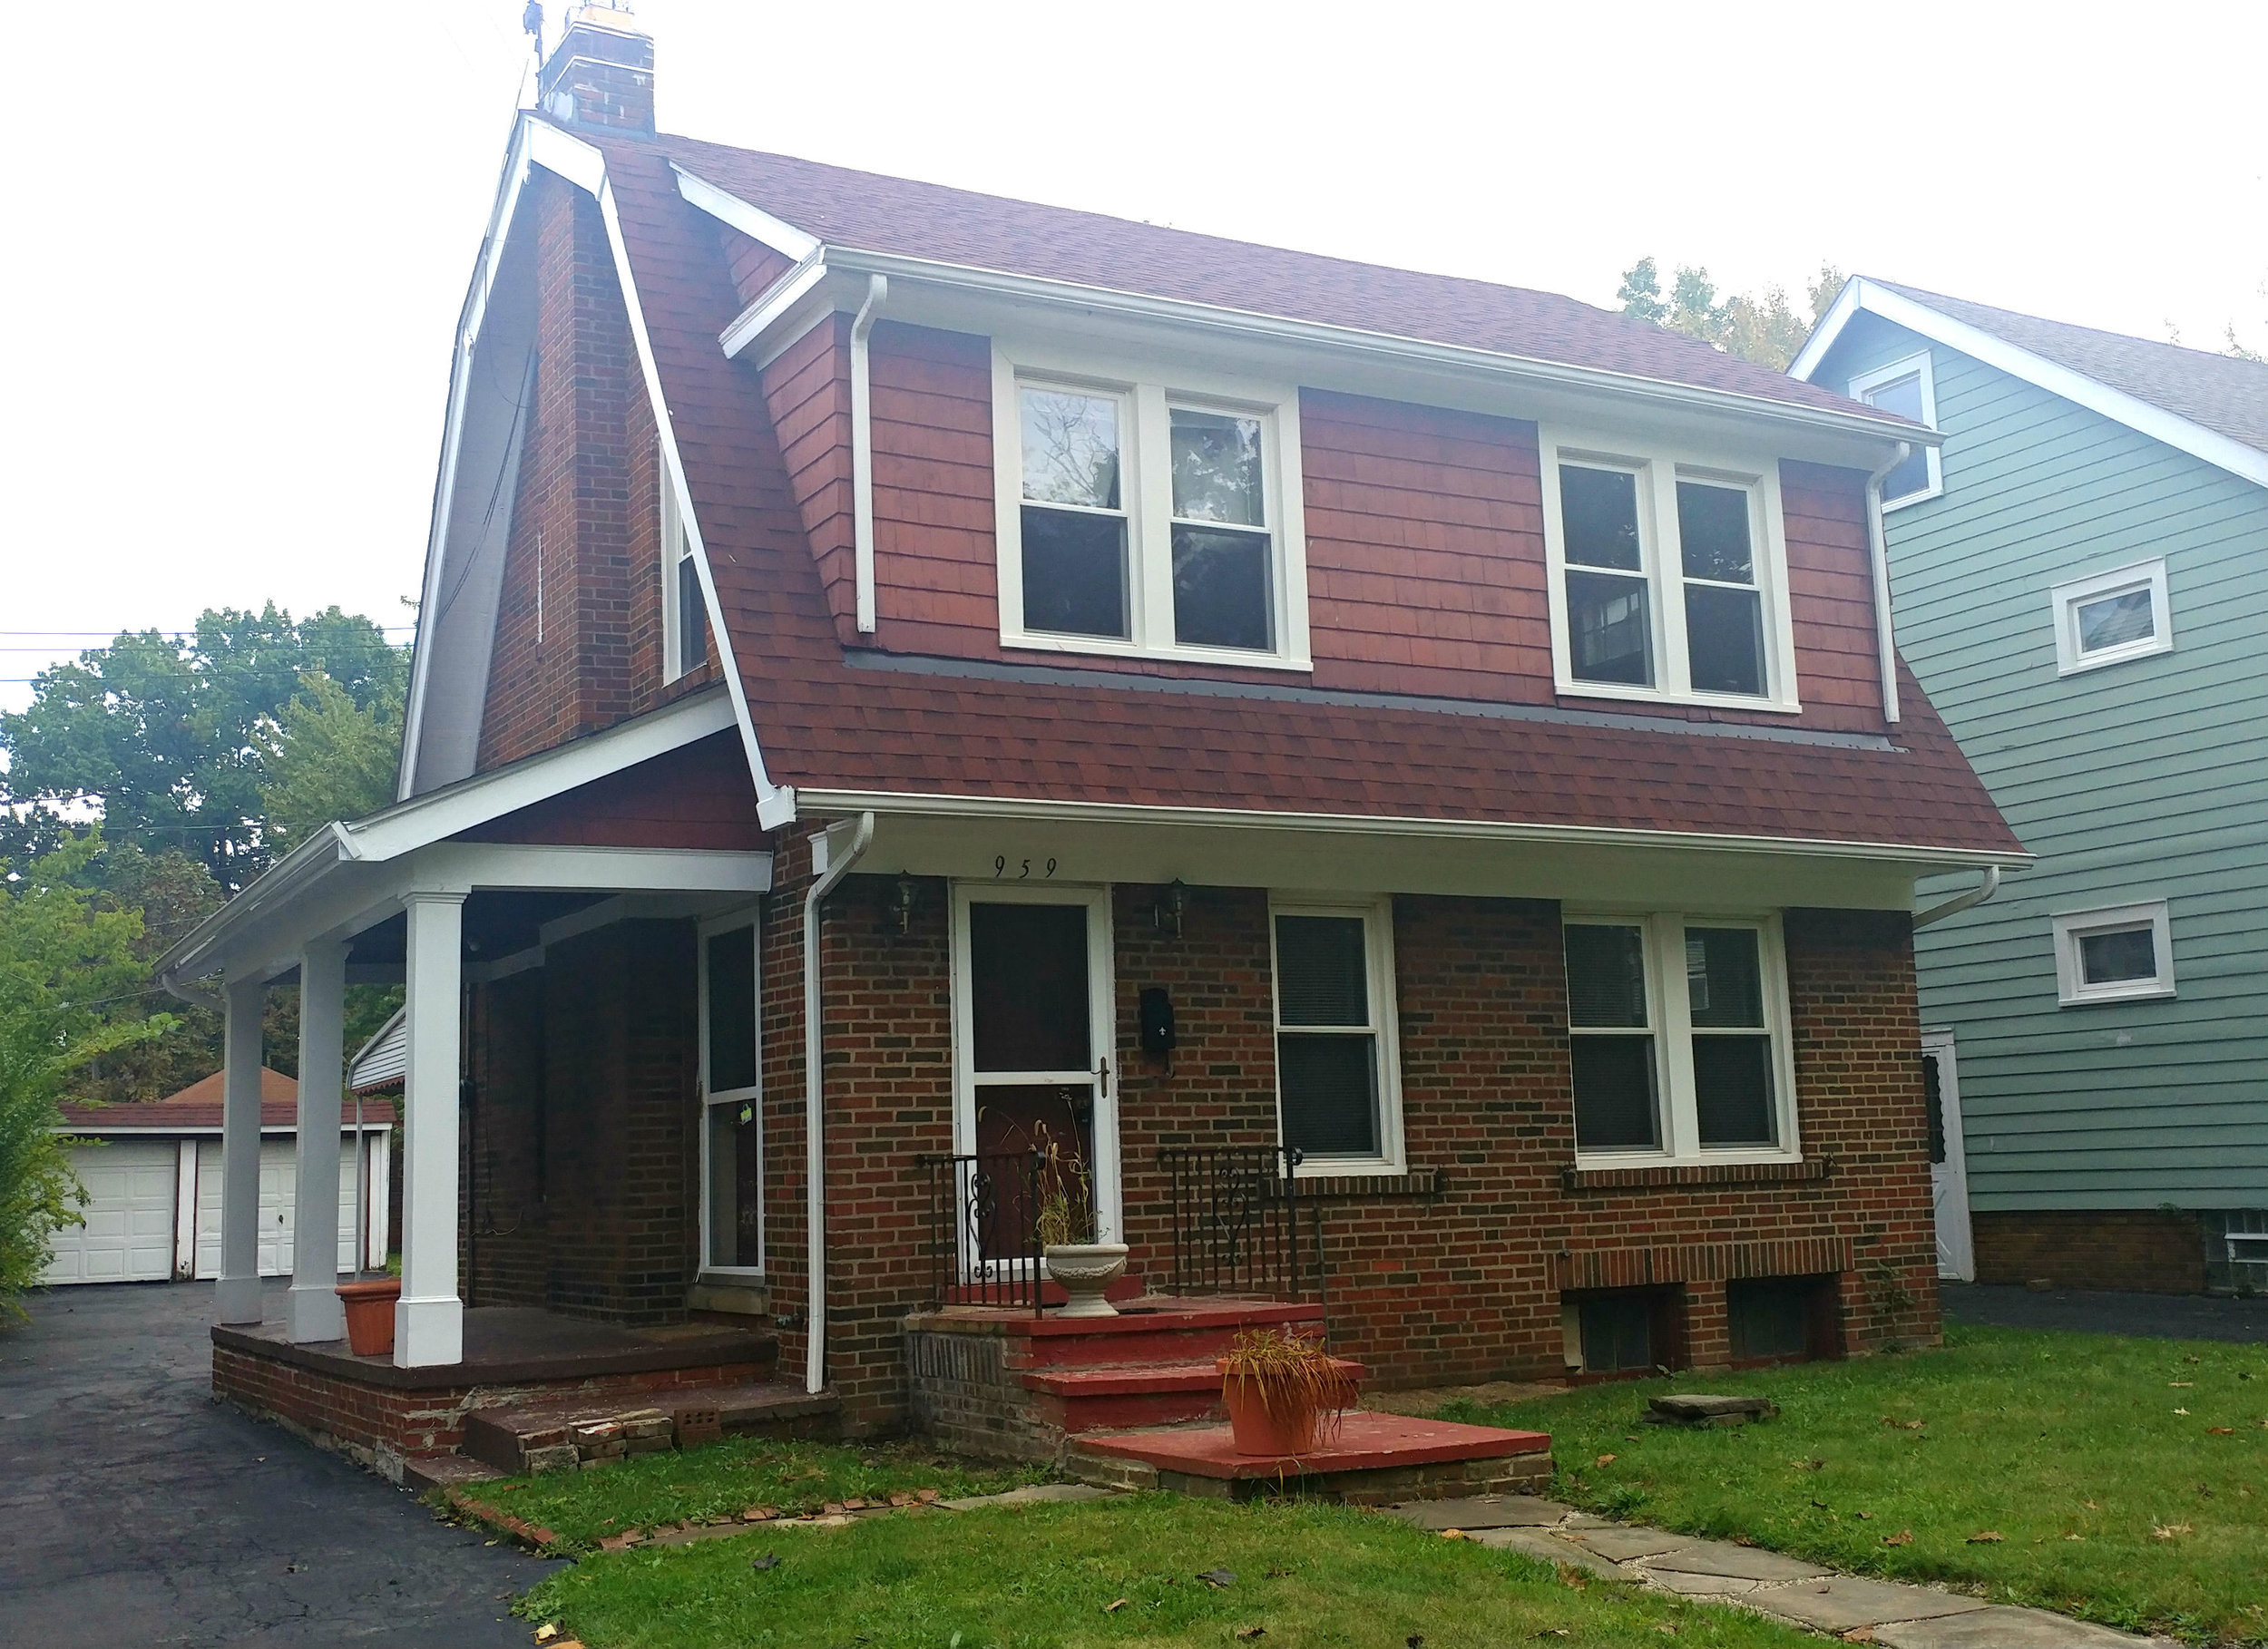 959 Rushleigh Rd., Cleveland Hts. | 3 bed 1 bath | 1,170 Sq. Ft. | $59,200